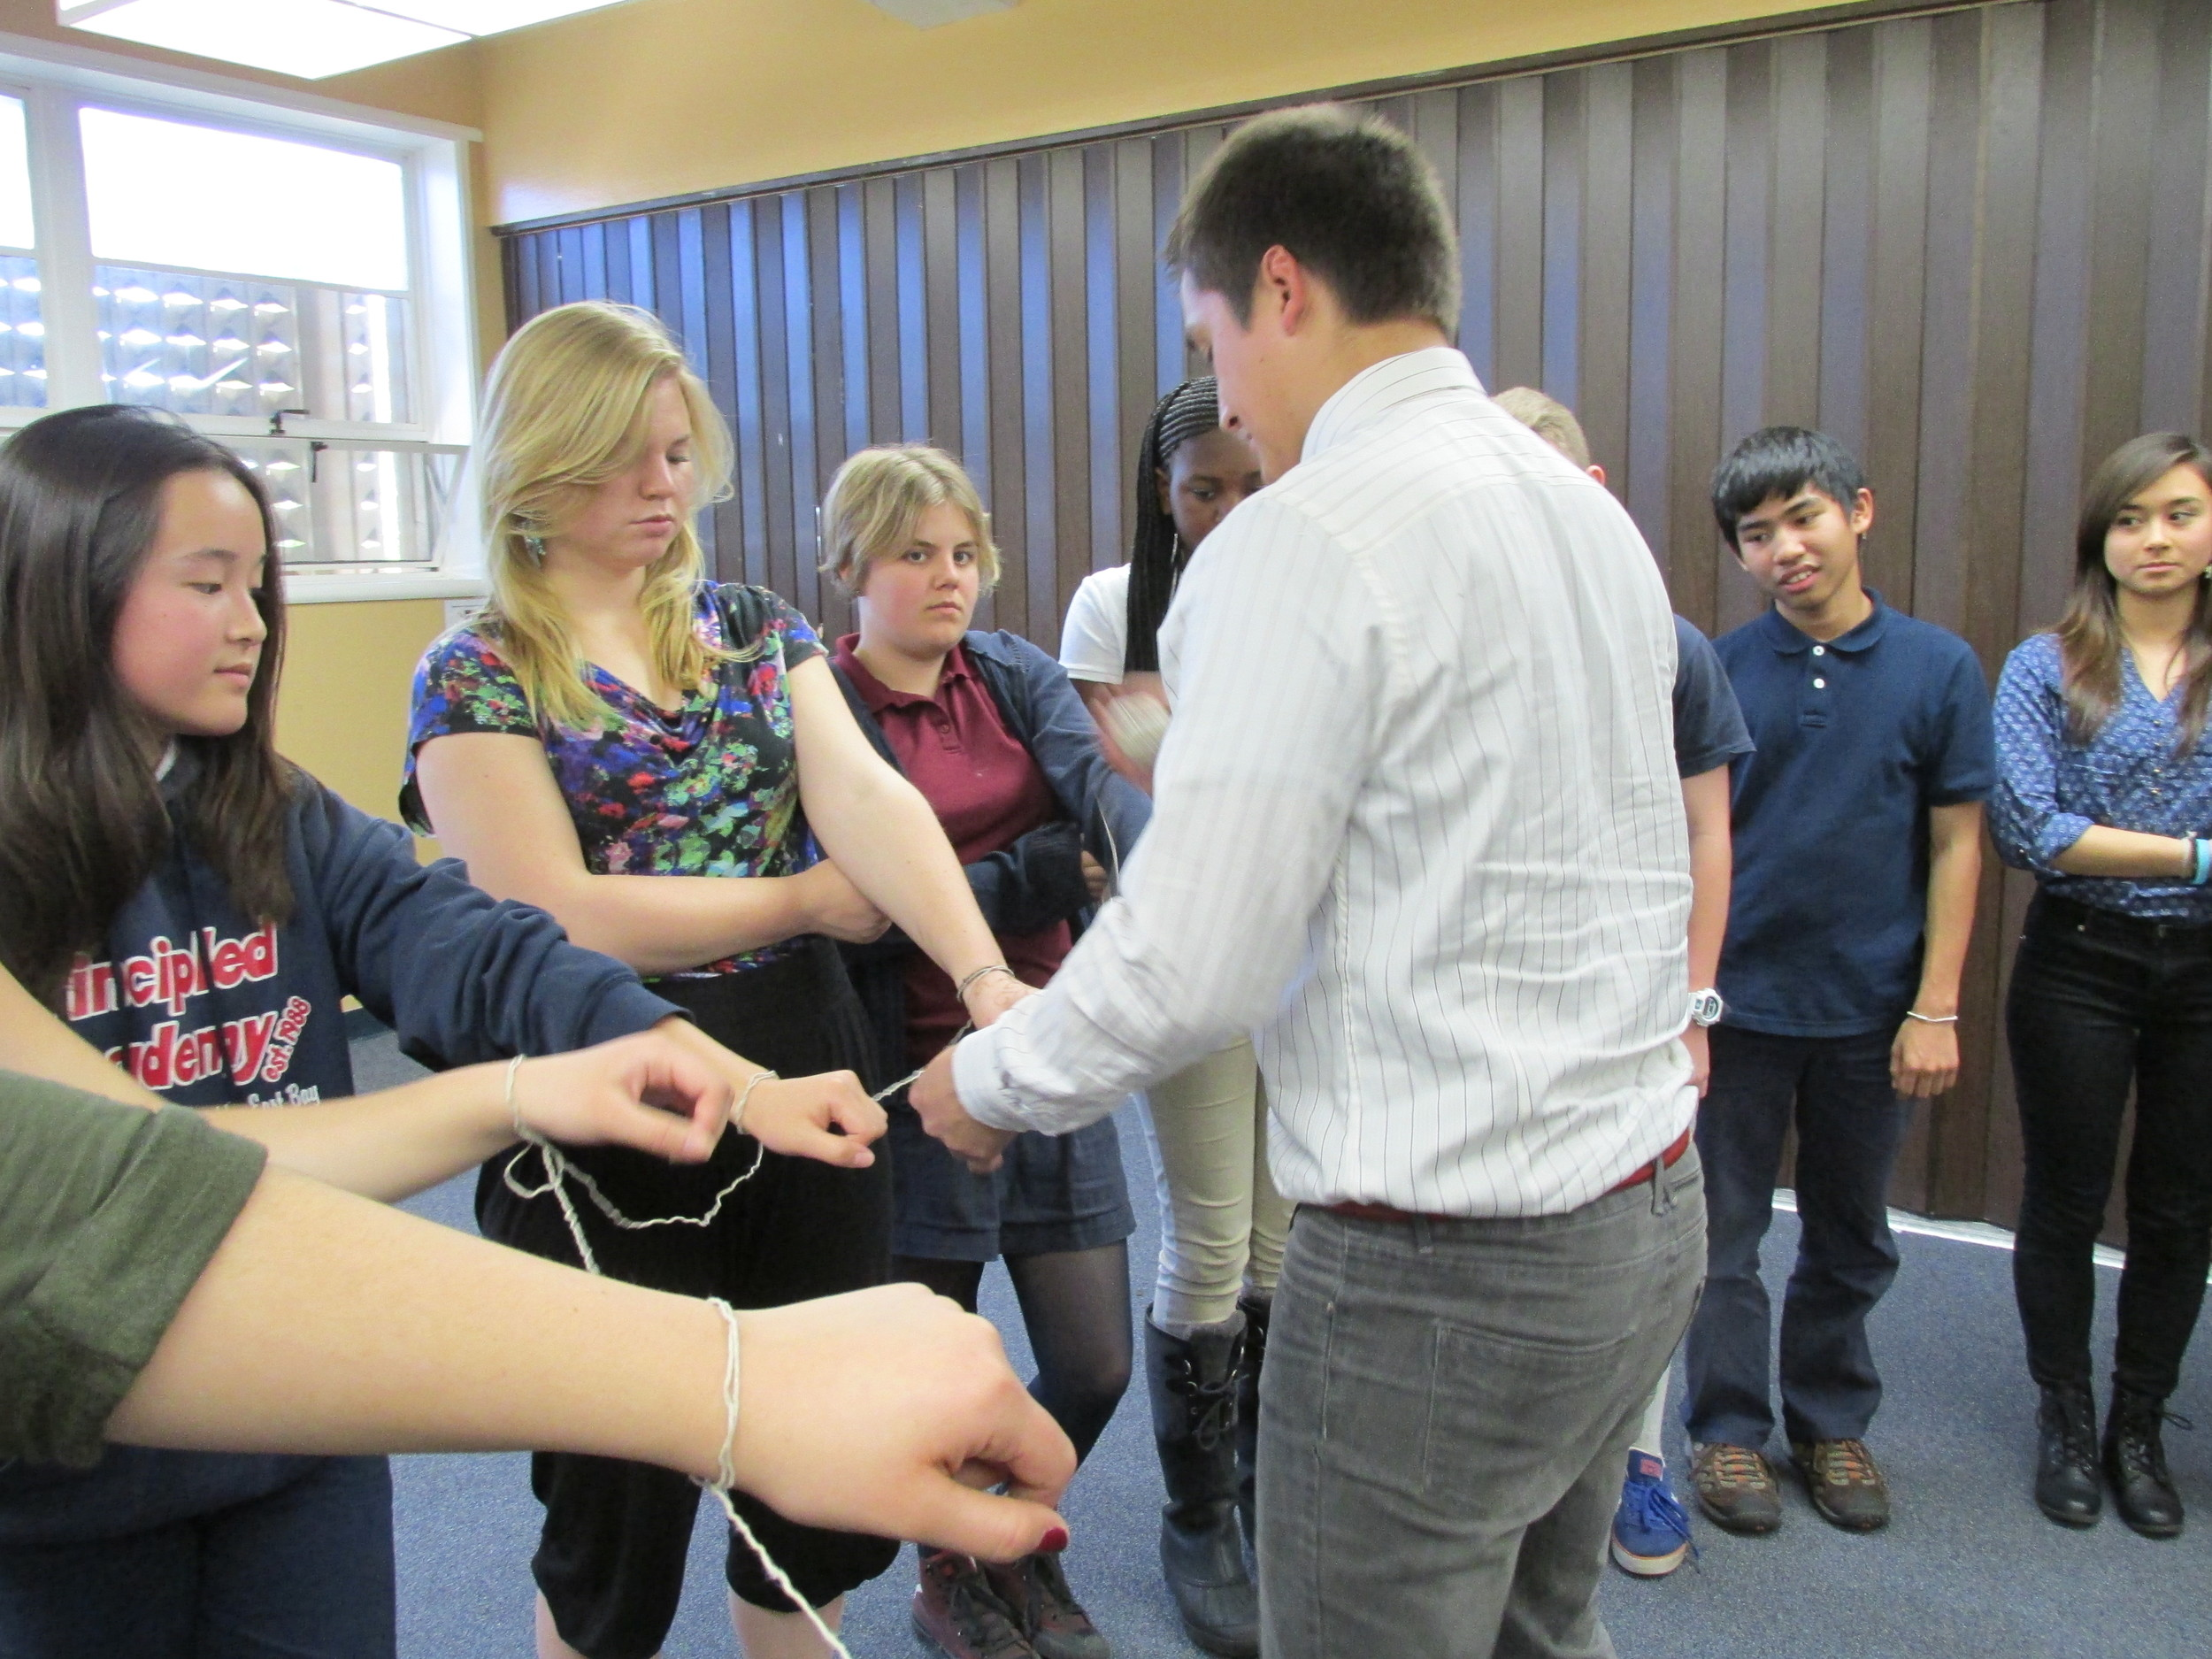 Sunny leading the string activity for connections